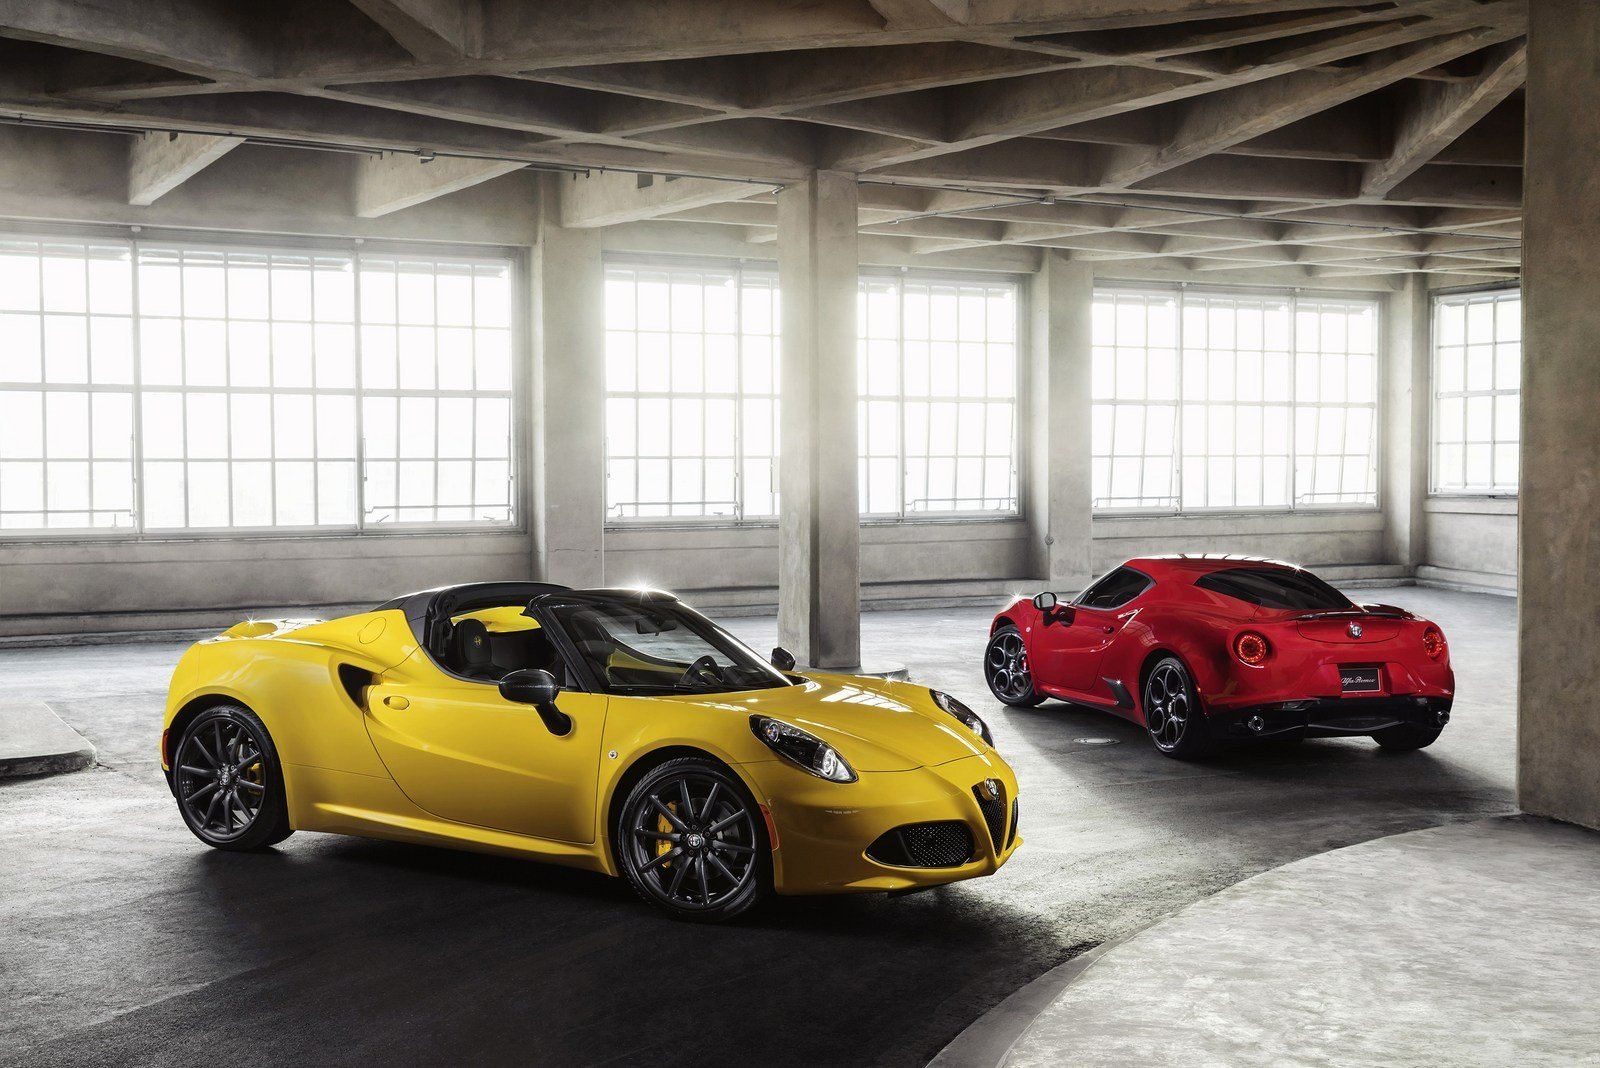 2016 alfa romeo 4c spider picture 610351 car review top speed. Black Bedroom Furniture Sets. Home Design Ideas